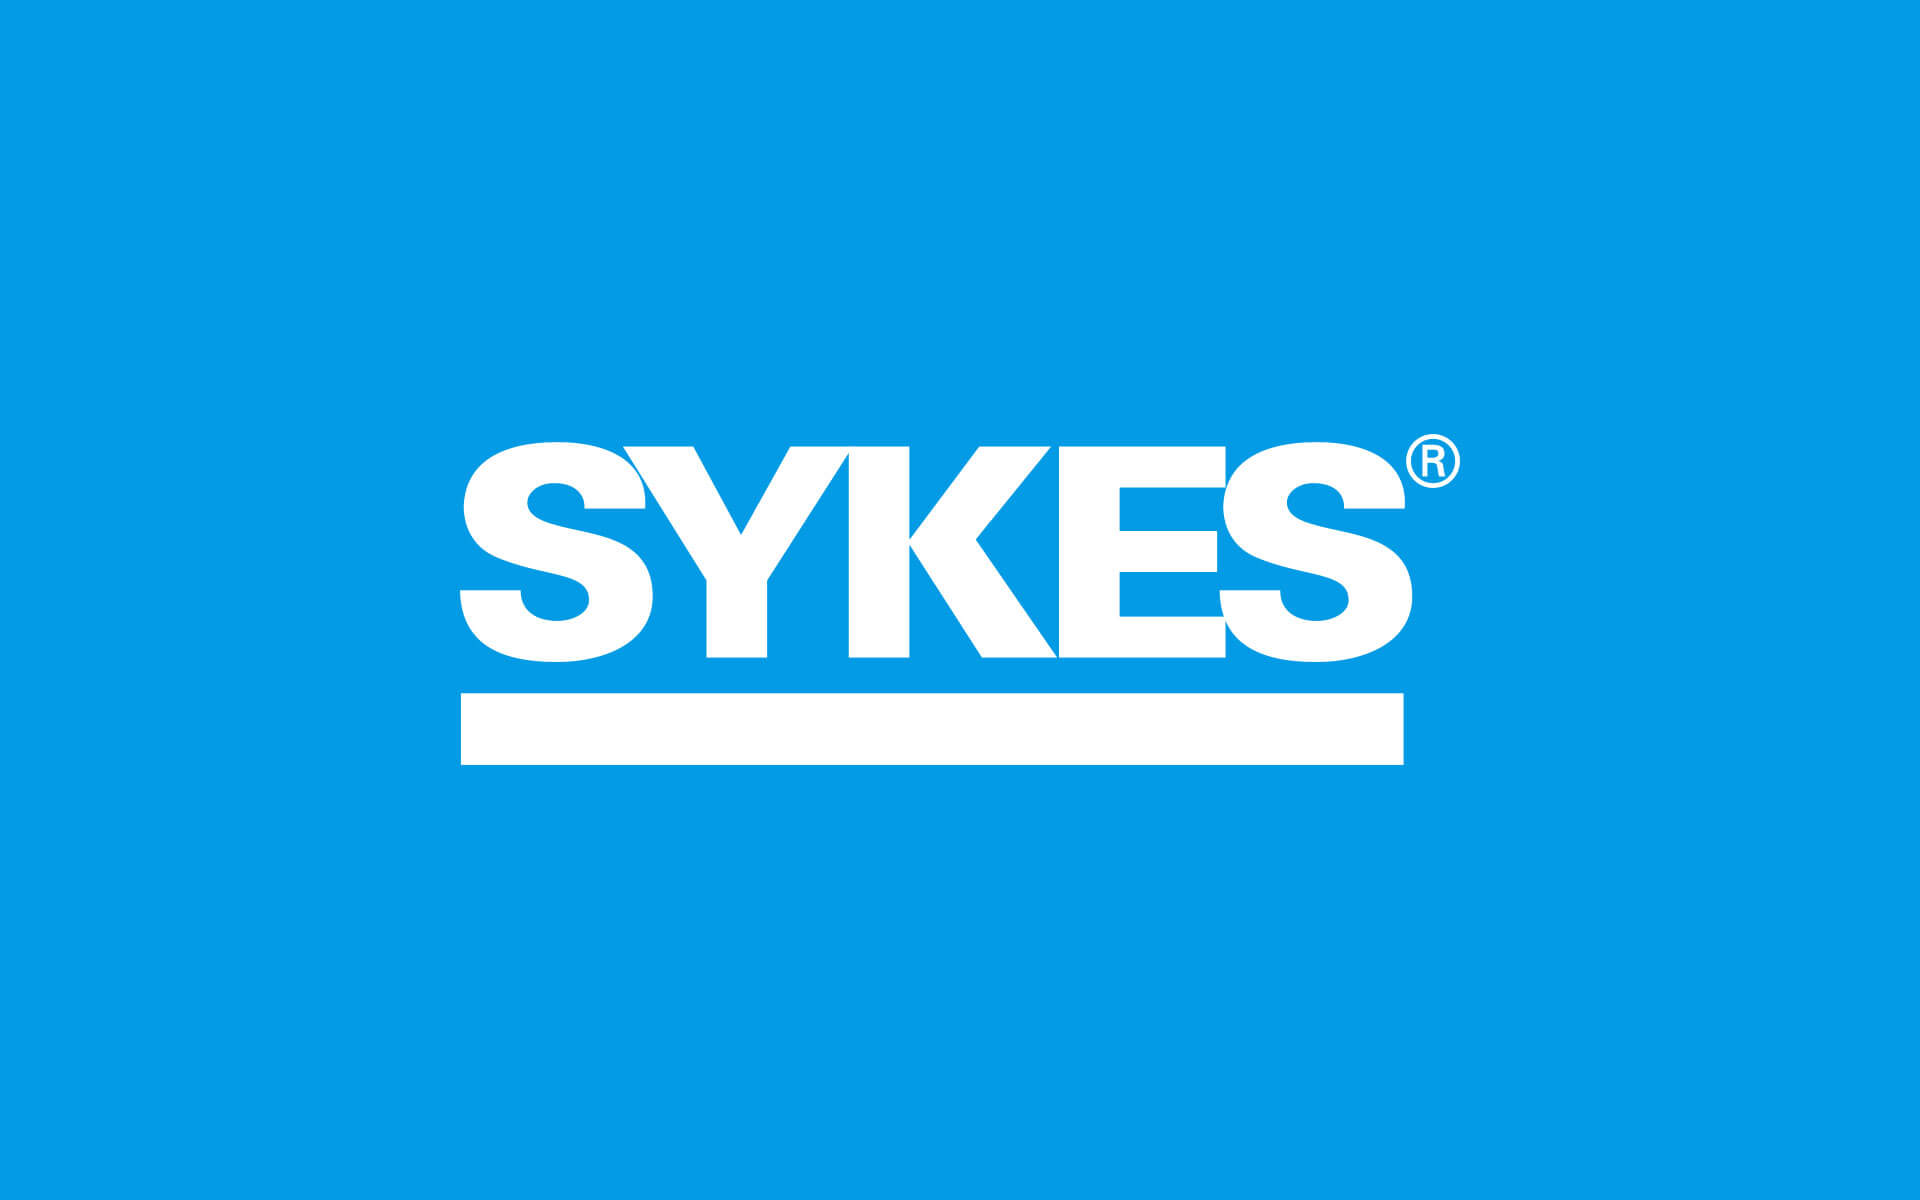 Sykes expands to rural Costa Rica